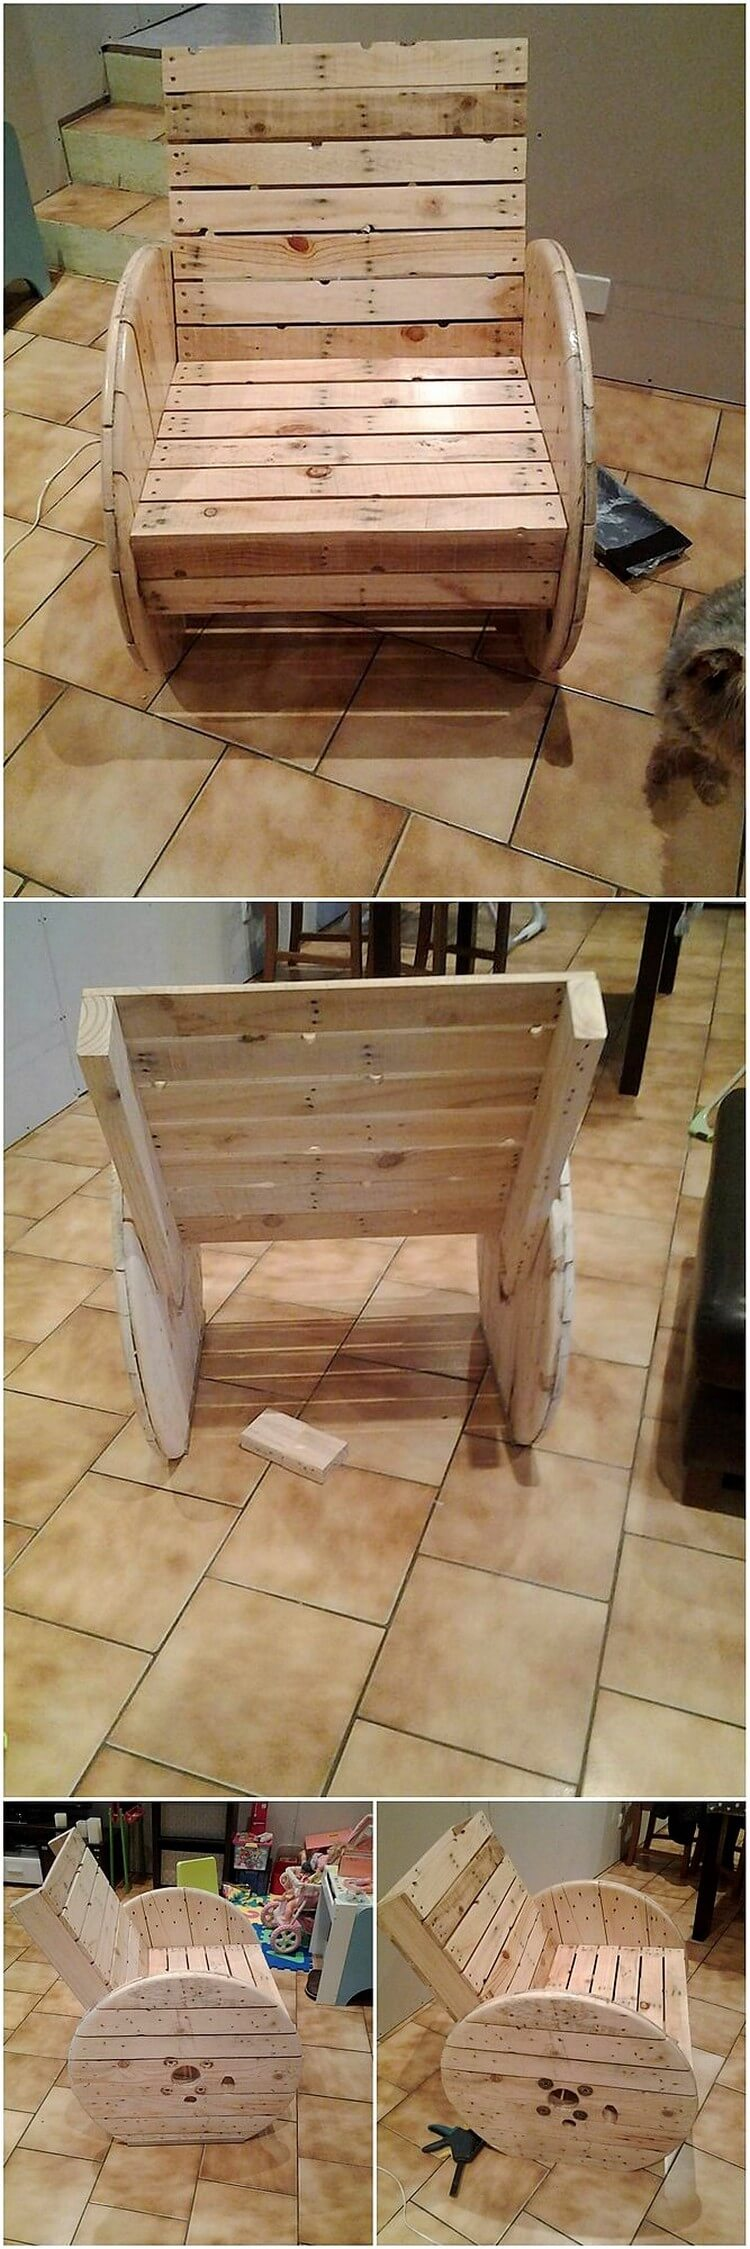 Amazing Tips To Convert Recycled Pallets Into Useful Things  # Muebles Con Tarimas